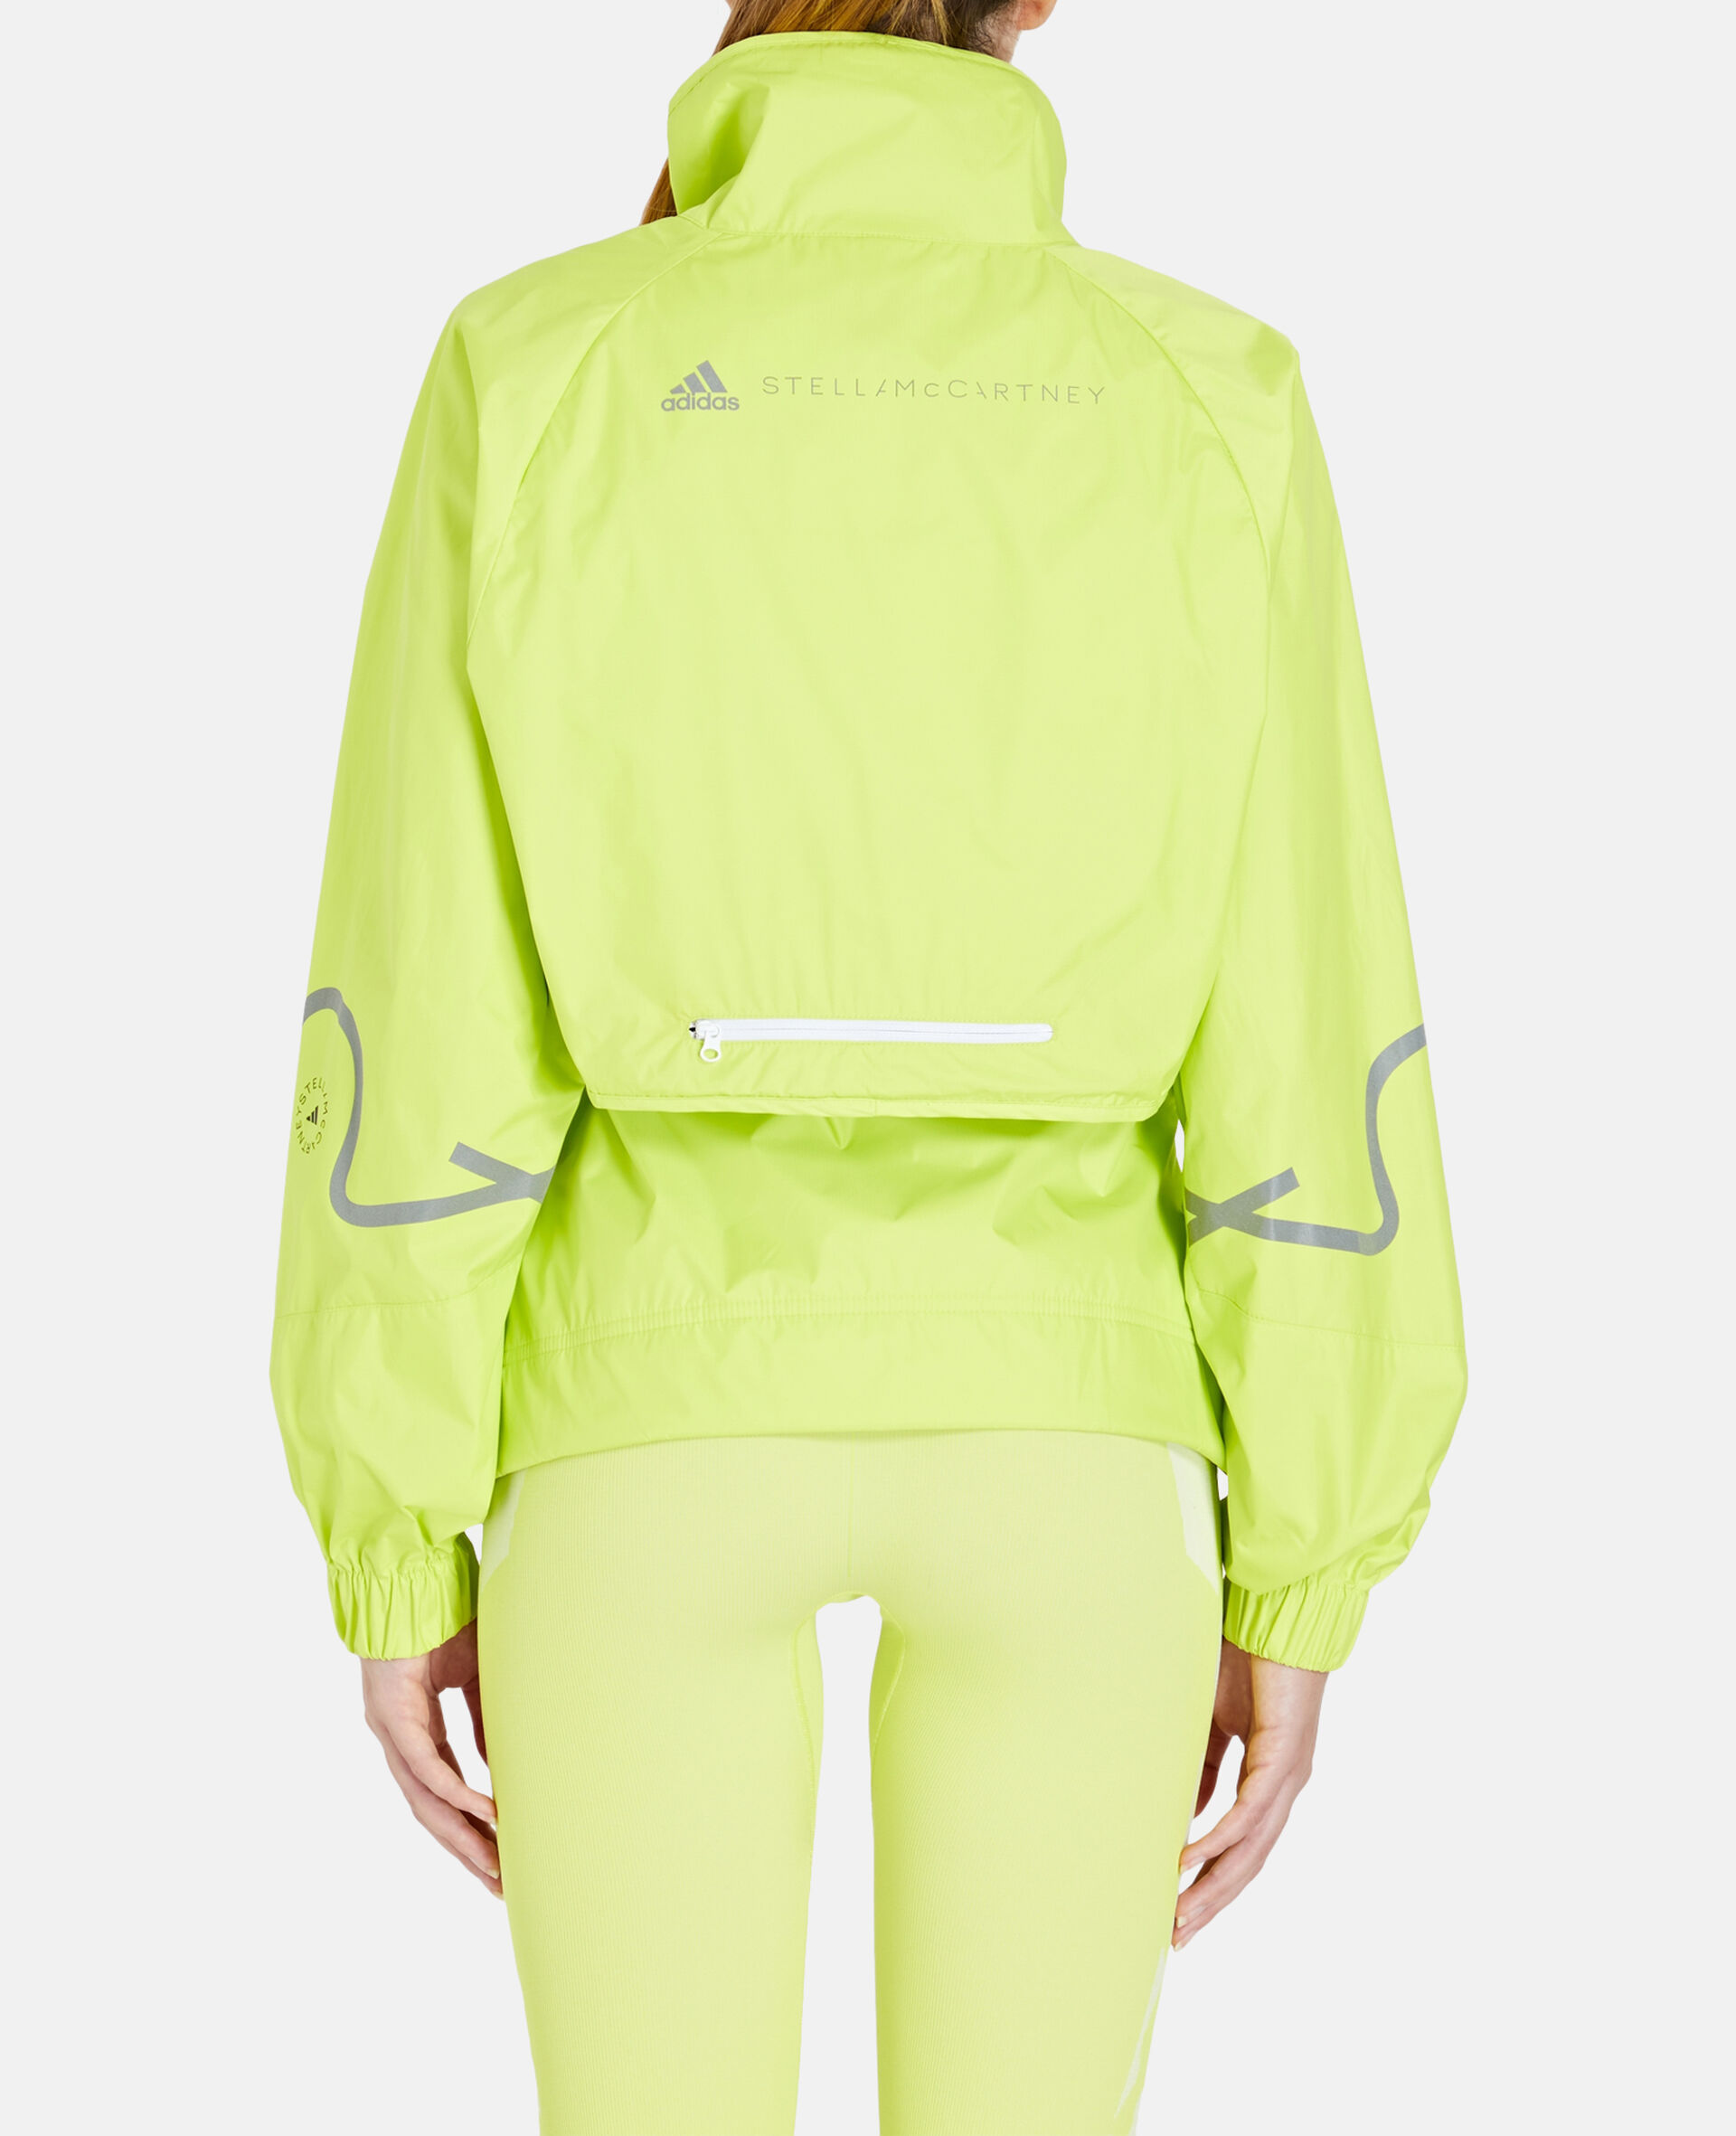 TruePace 2-in-1 Running Jacket-Yellow-large image number 2